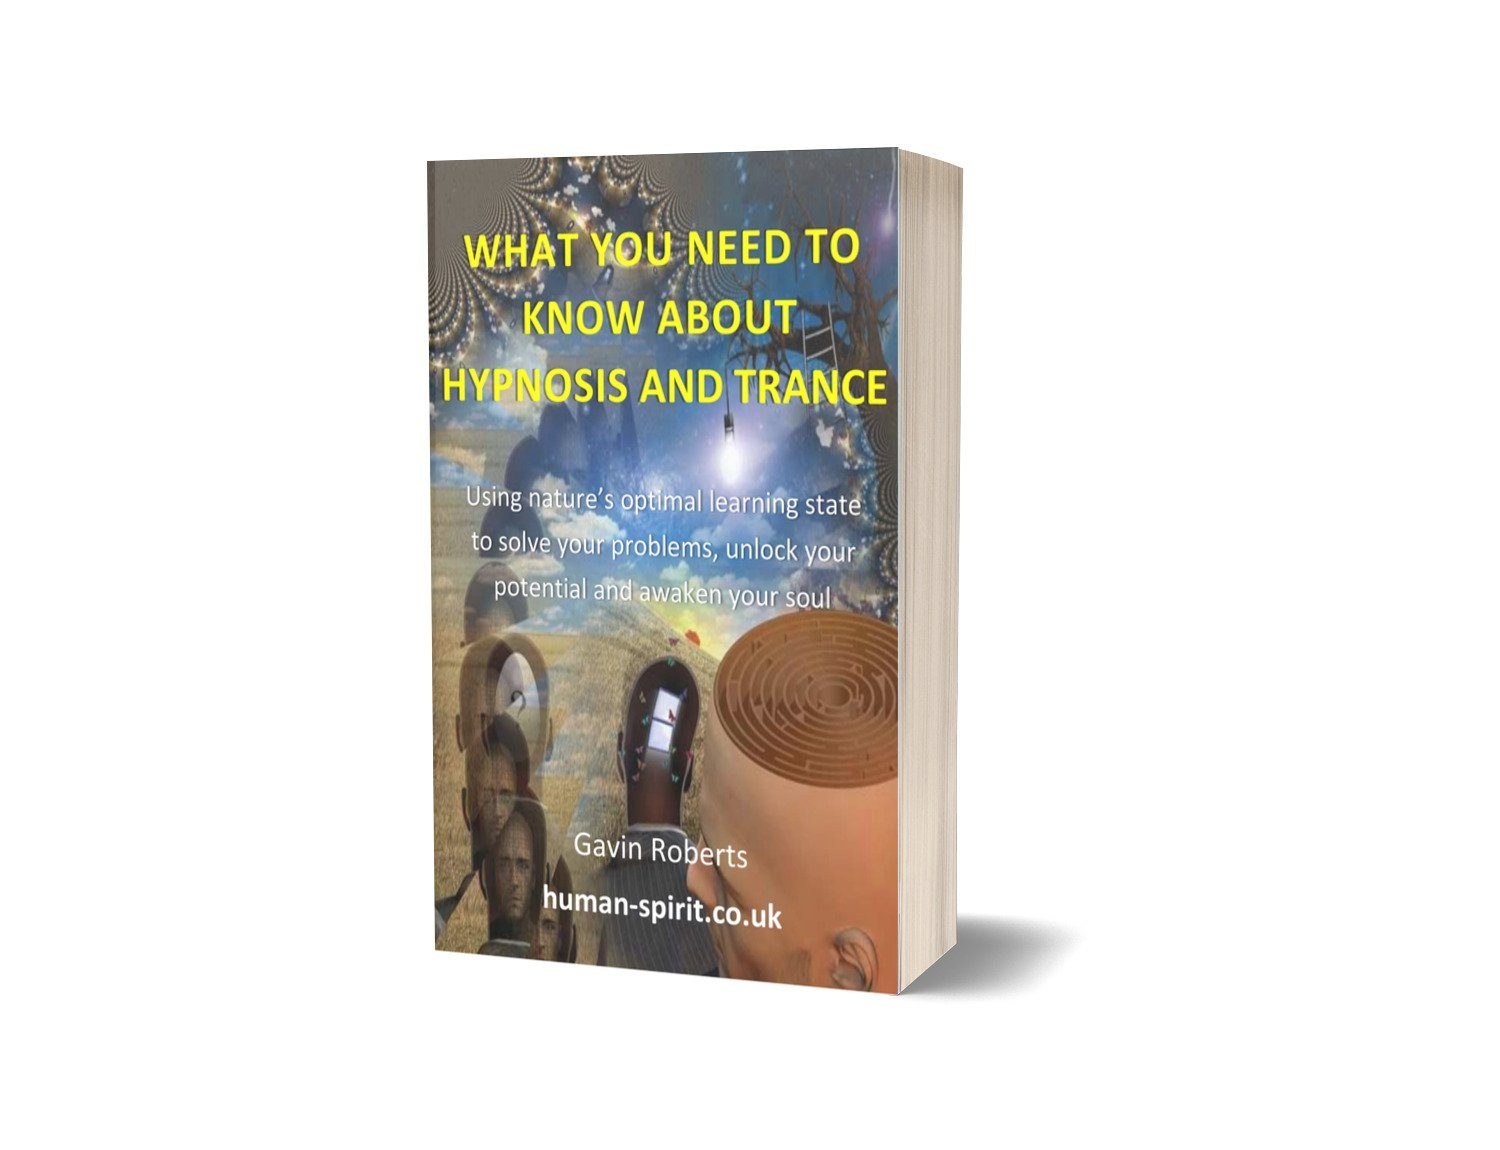 free ebook 'What You Need to Know about Hypnosis and Trance'